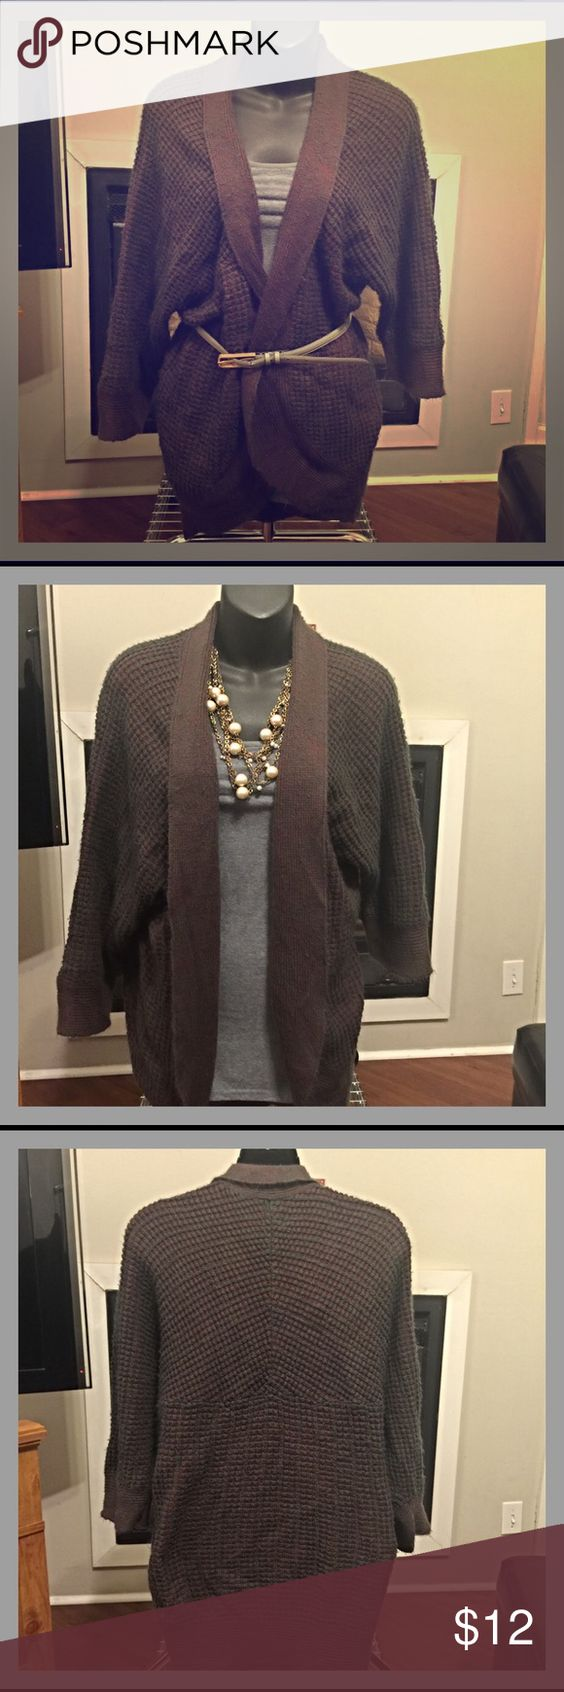 Cardigan from Nordstrom Very cute and comfy cardigan from Nordstrom.  Brand is Valette. 68% acrylic, 32% cotton.  Maroon and gray. 3/4 sleeves. In good pre-owned condition, though there are some signs of wear (see pic 4).  🌟 TOP RATED SELLER 🌟 FAST SHIPPER 🌟 Valette (Nordstrom) Sweaters Cardigans